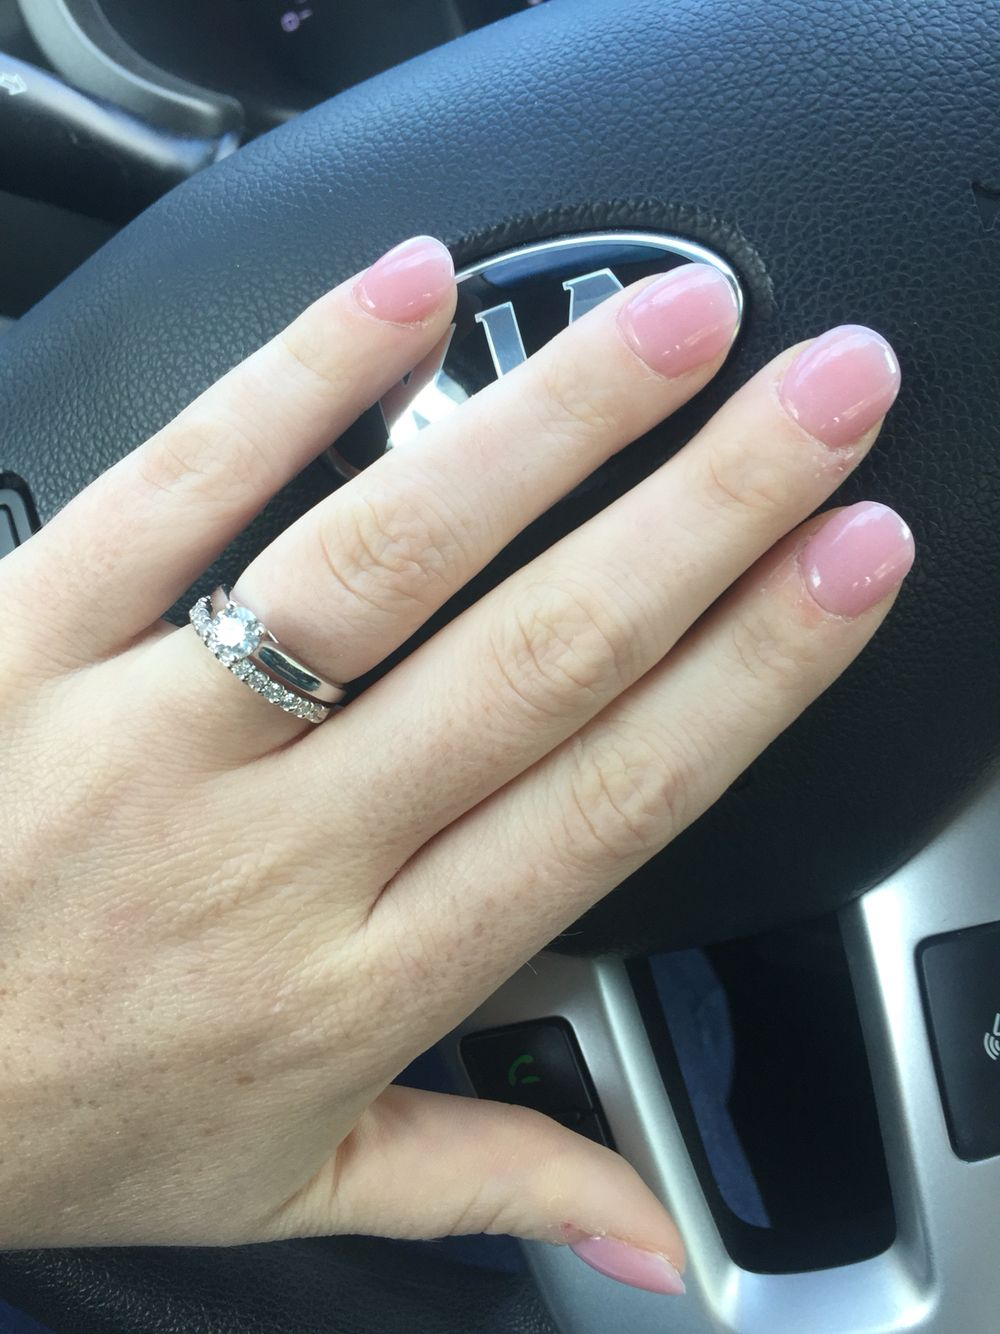 Pin by Sherry Rowe on sns nails colors | Dipped nails, Sns